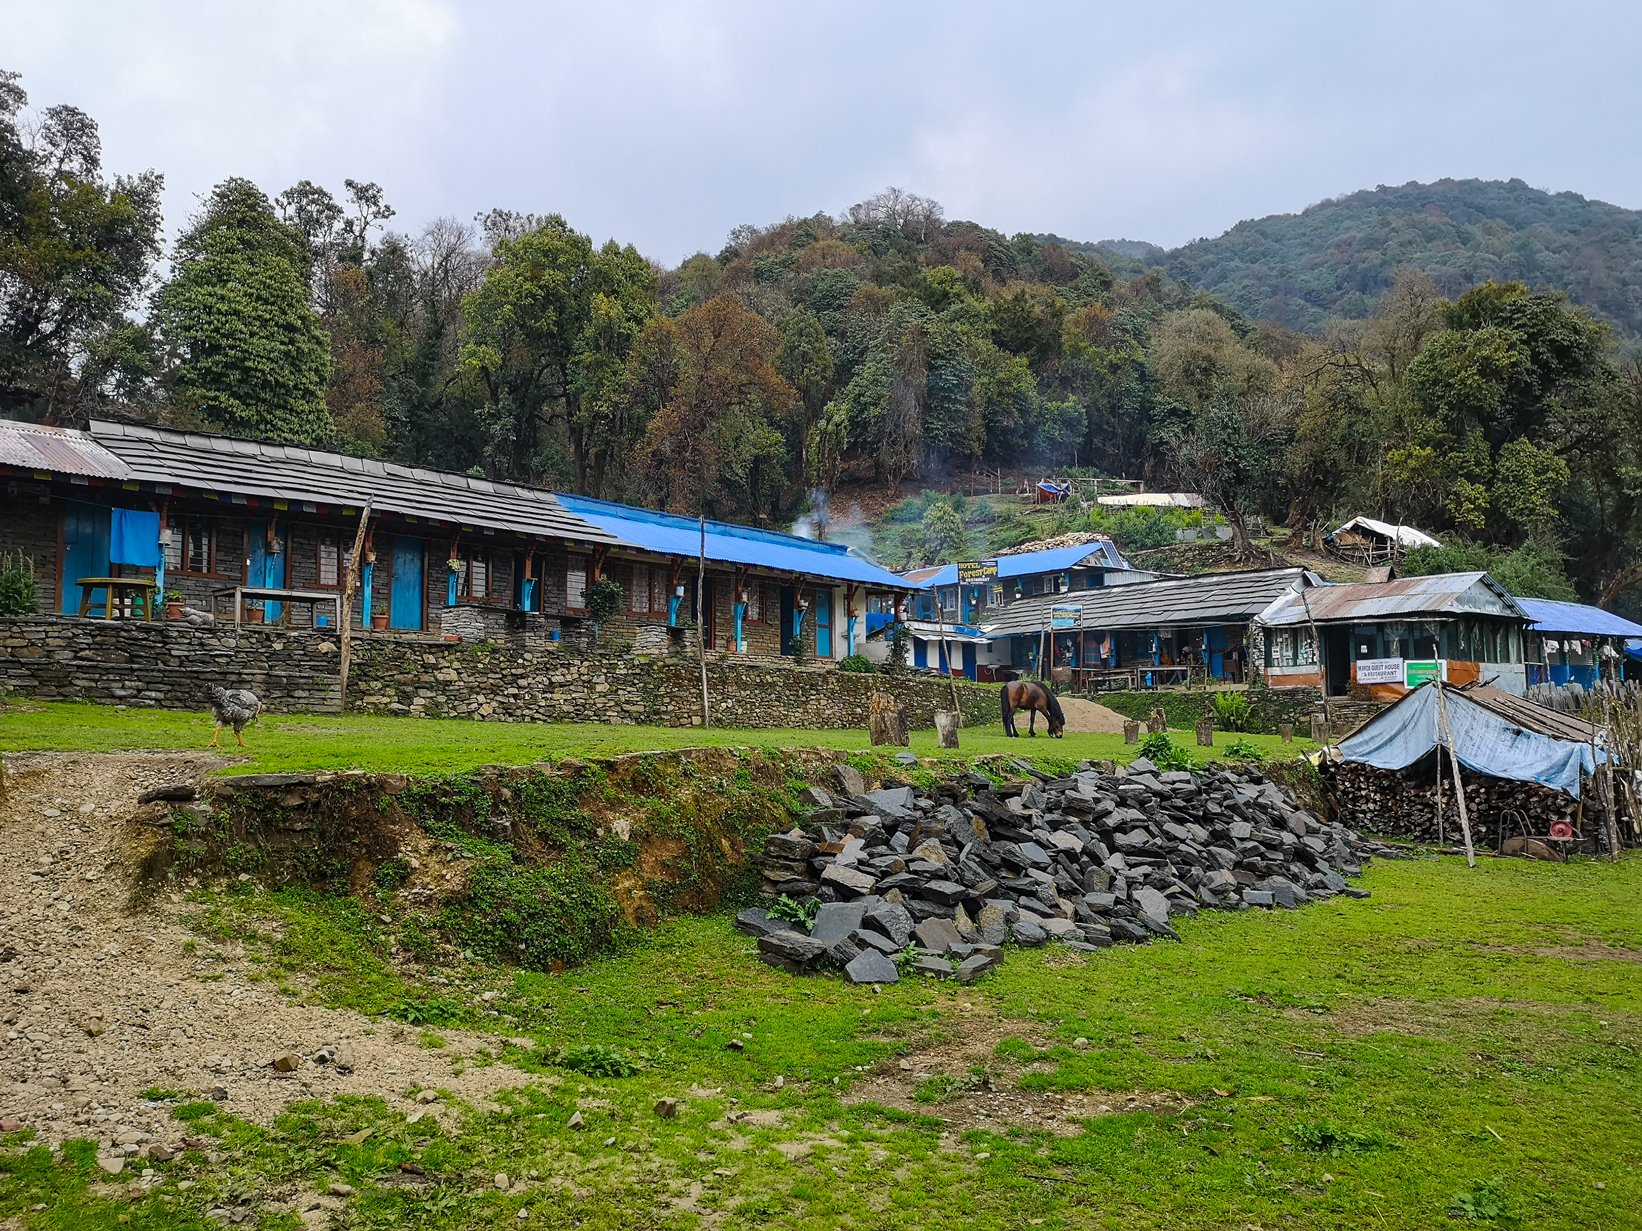 Forest camp, Mardi Himal base camp in Nepal